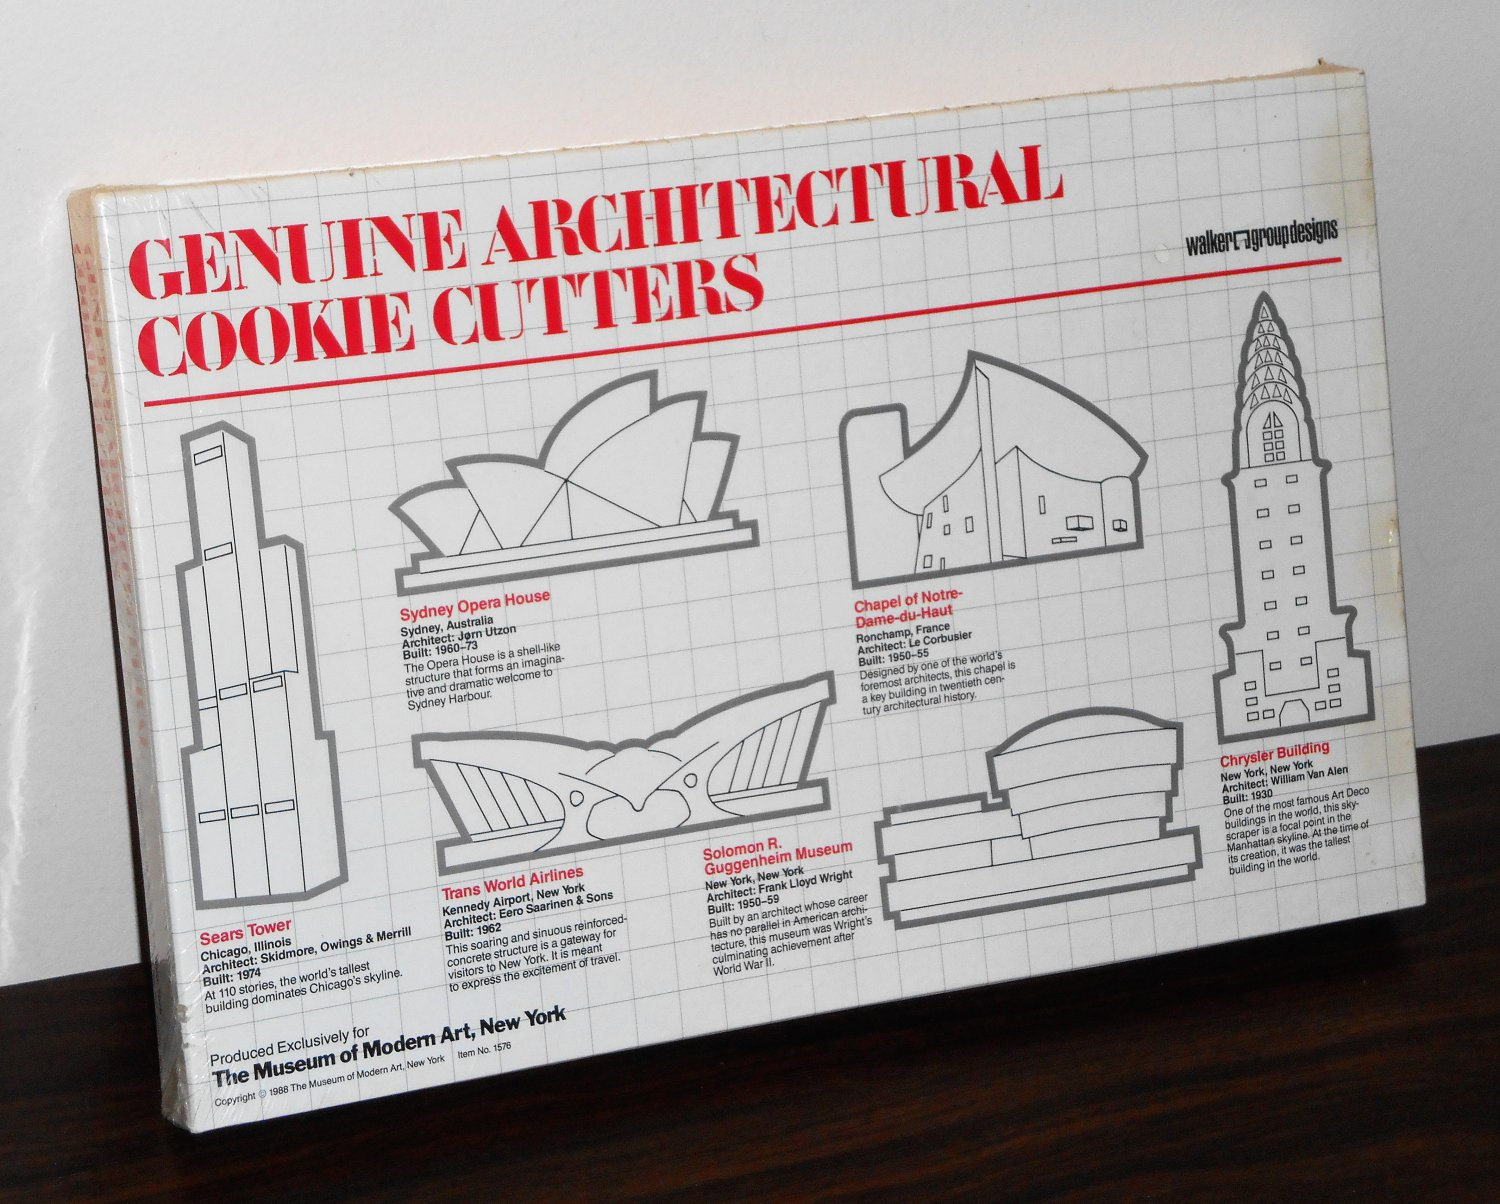 Genuine Architectural Cookie Cutters Set of Six Item 1576 Museum of Modern Art 1988 New In Box NIB